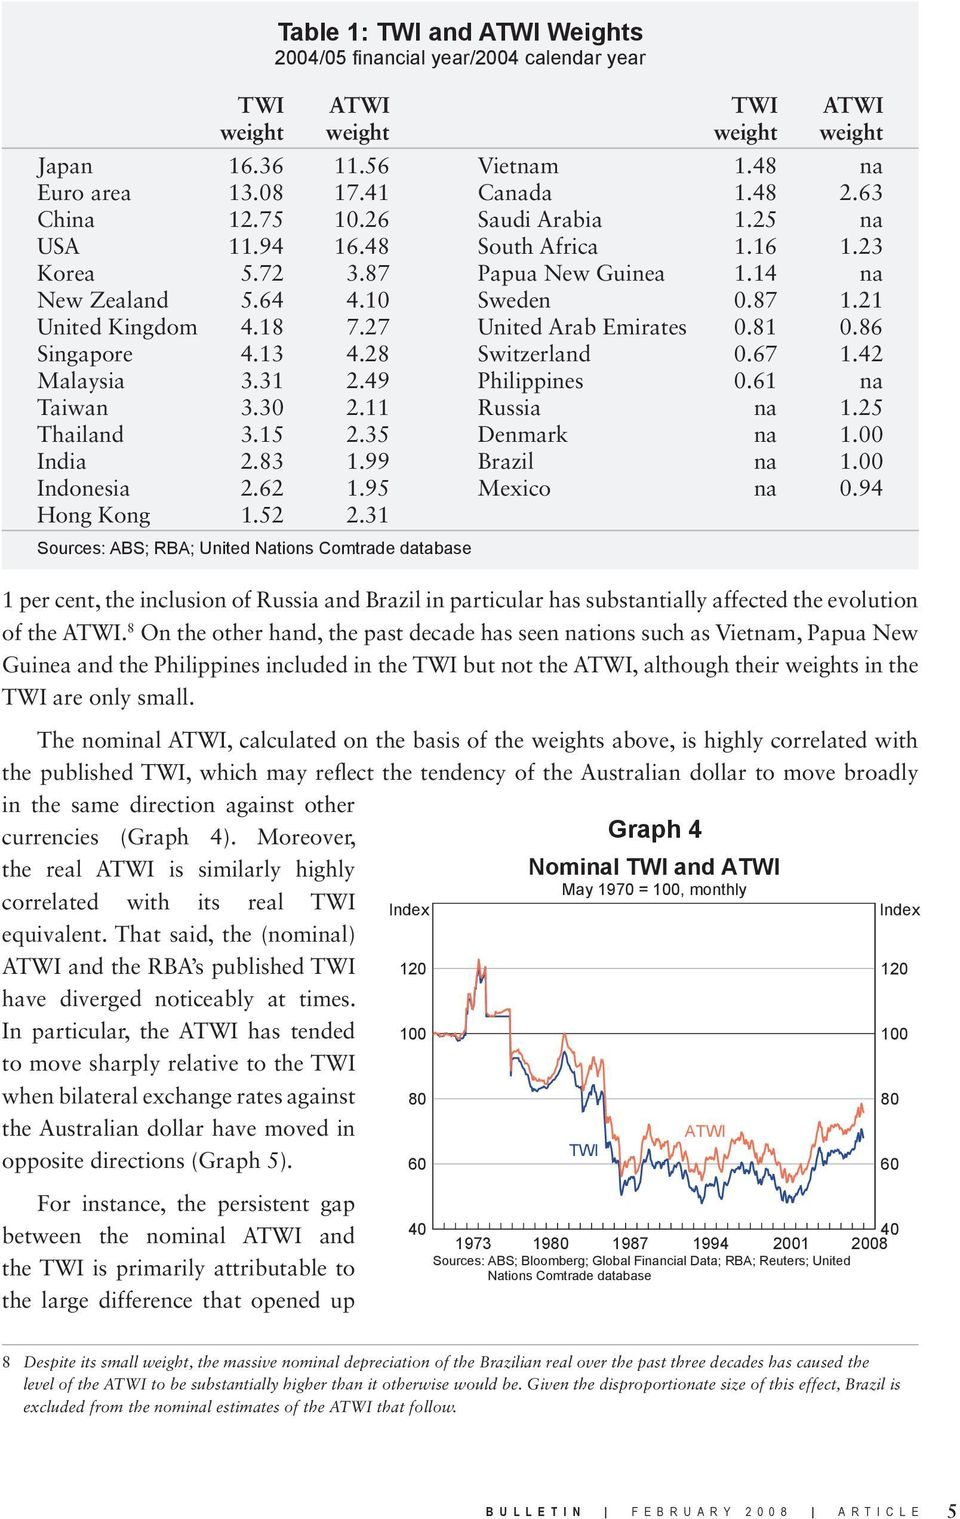 The nominal ATWI, calculated on the basis of the weights above, is highly correlated with the published TWI, which may reflect the tendency of the Australian dollar to move broadly in the same